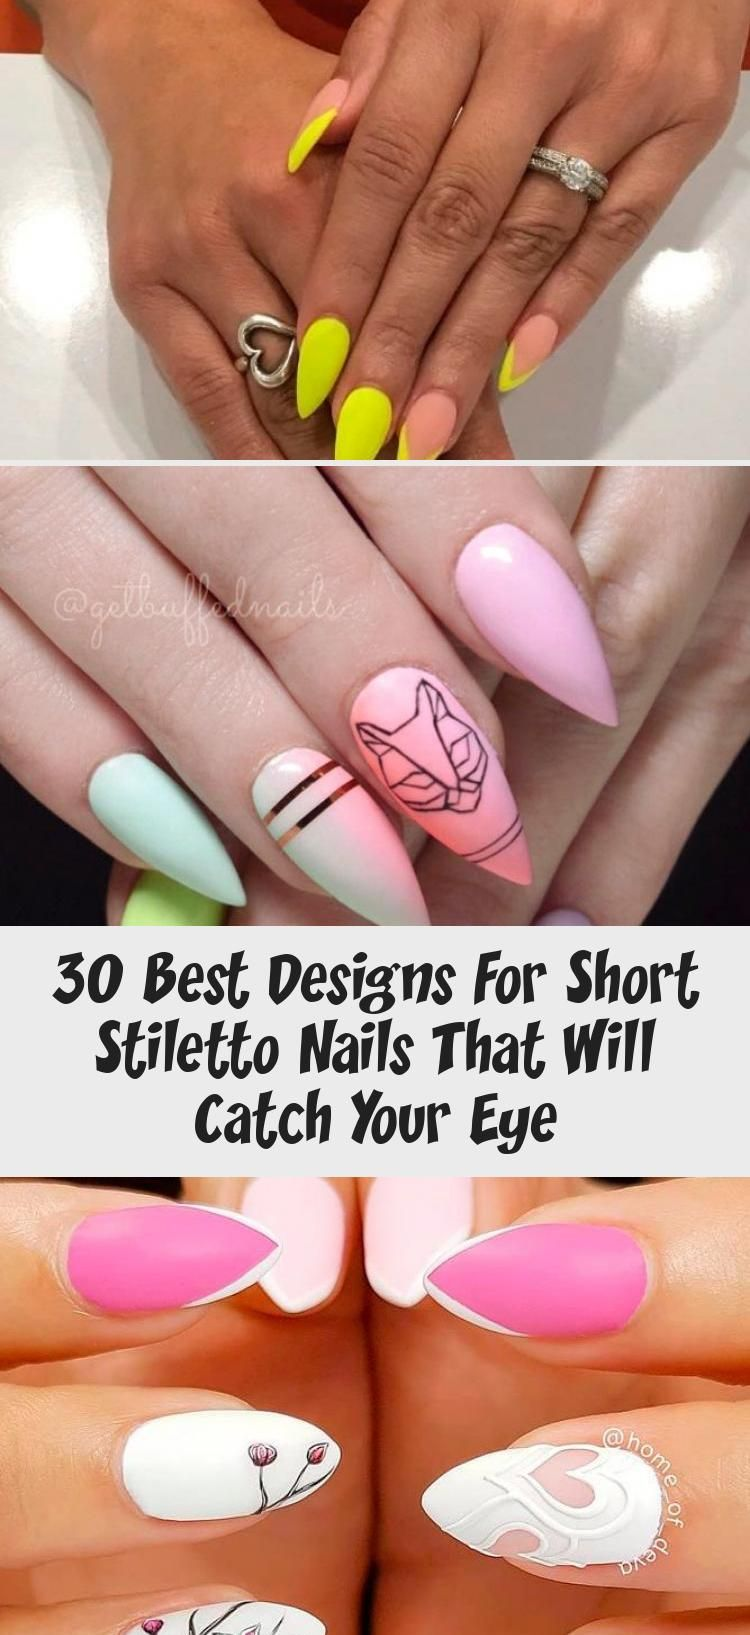 Photo of 30 Best Designs For Short Stiletto Nails That Will Catch Your Eye – Nail Art